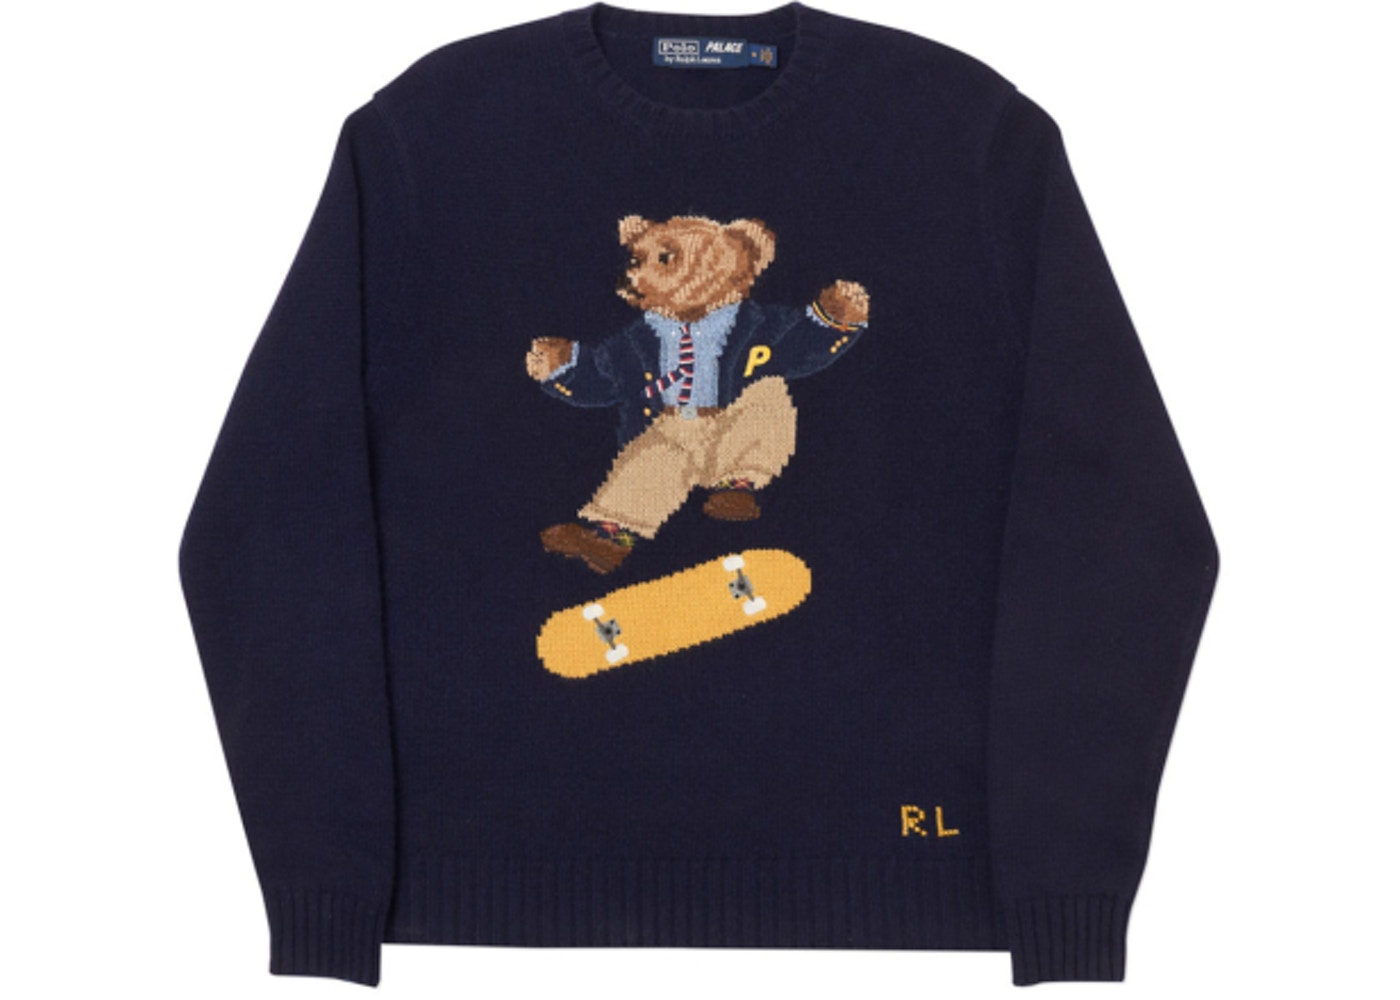 911a8d4f1 Palace Ralph Lauren Skate Polo Bear Sweater Aviator Navy - FW18